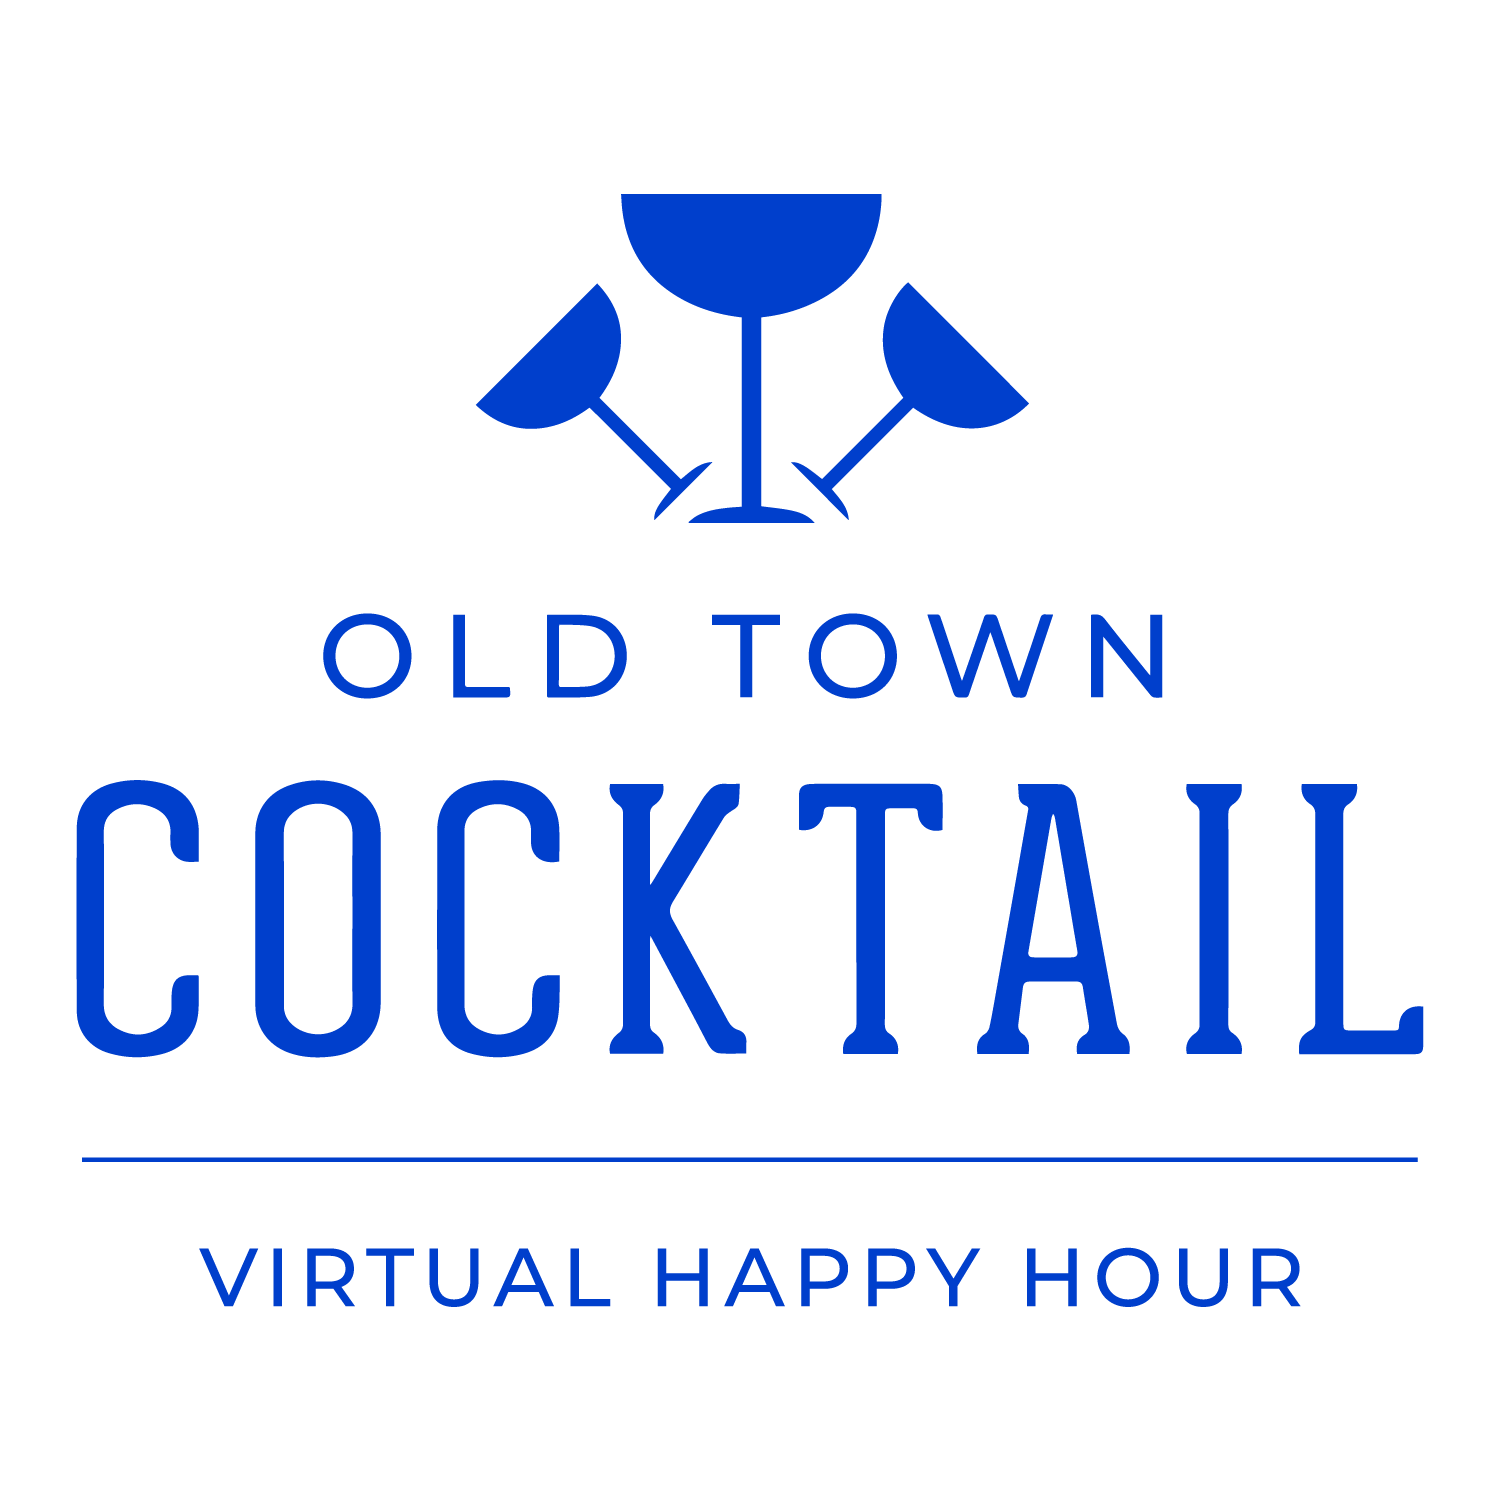 Old Town Cocktail | Virtual Happy Hour Logo